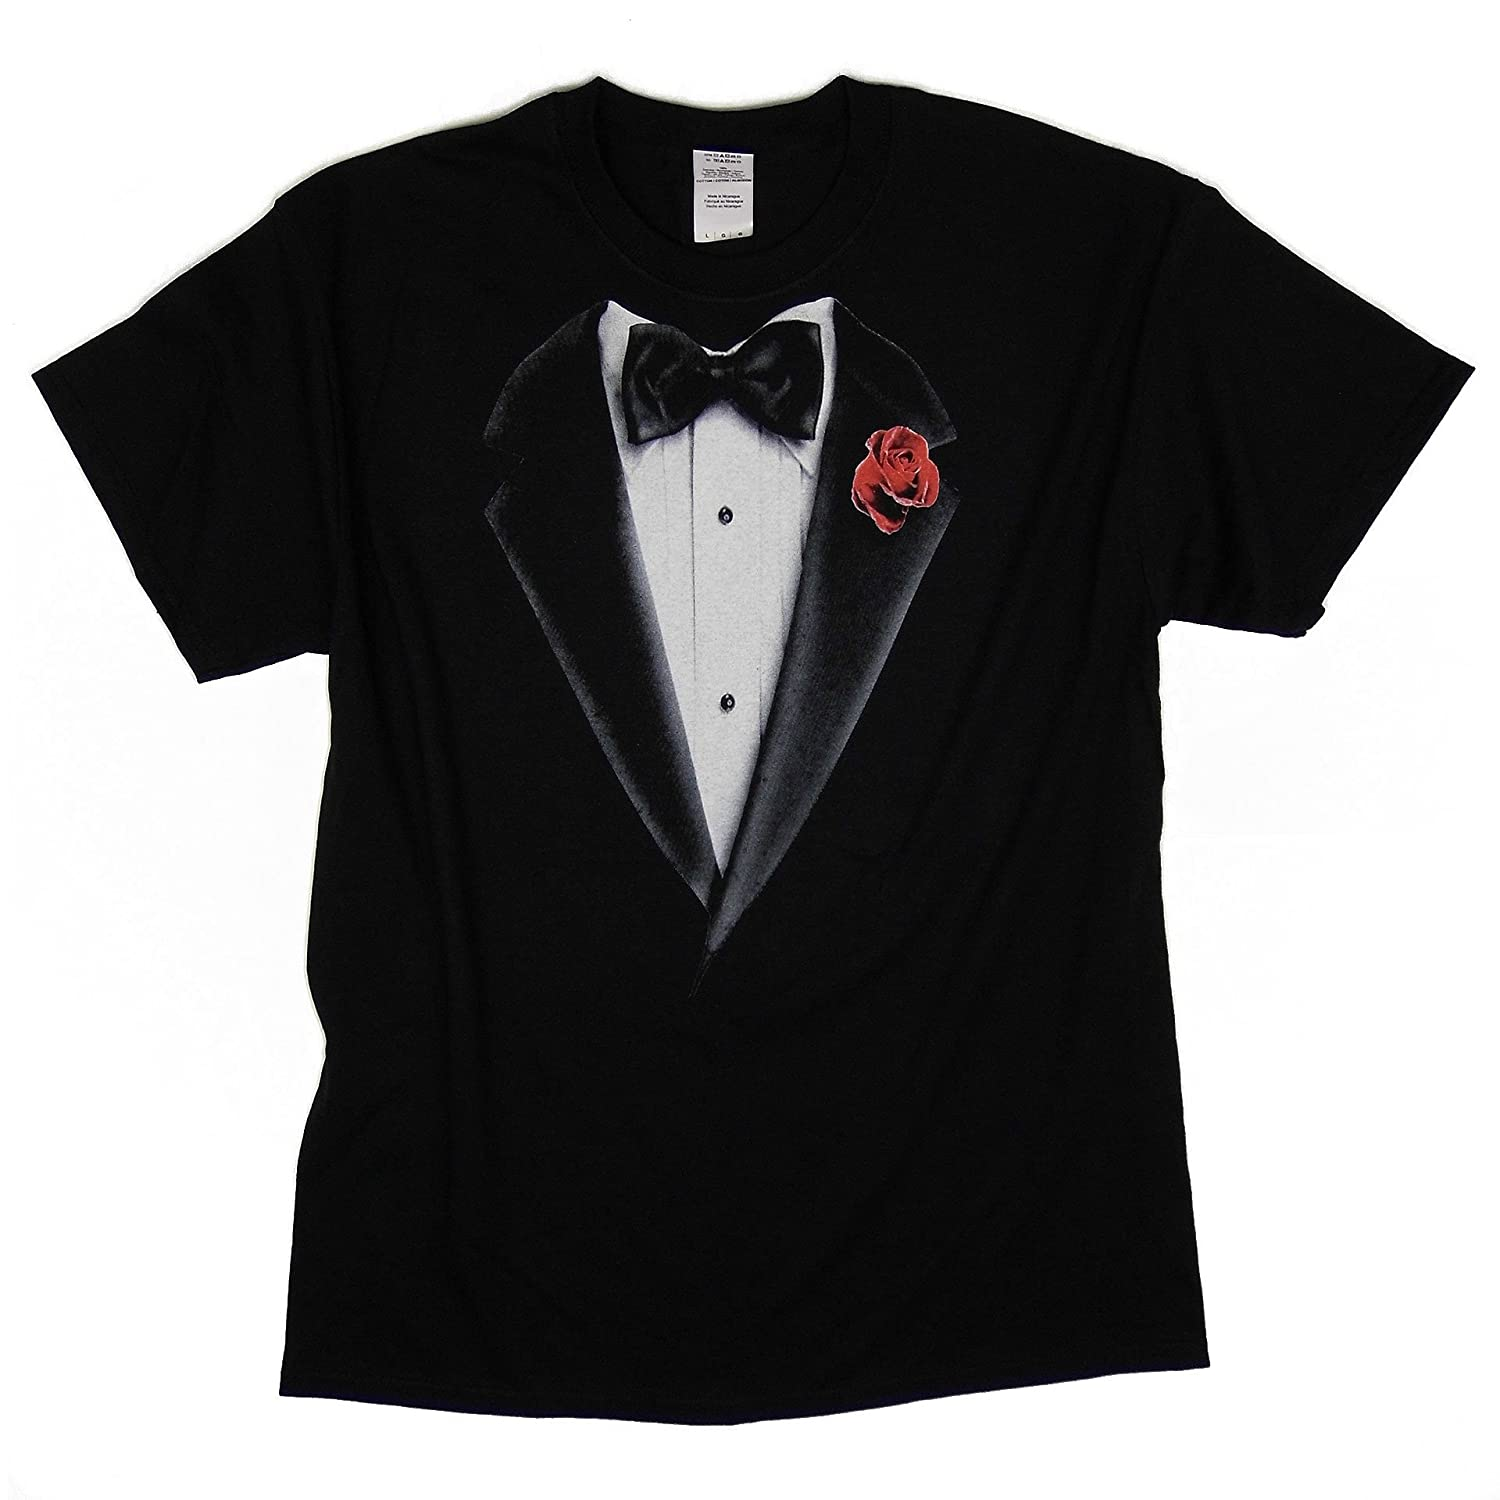 Black t shirt with suit - Tuxedo Dinner Suit T Shirt Black S 5xl Available Amazon Co Uk Clothing